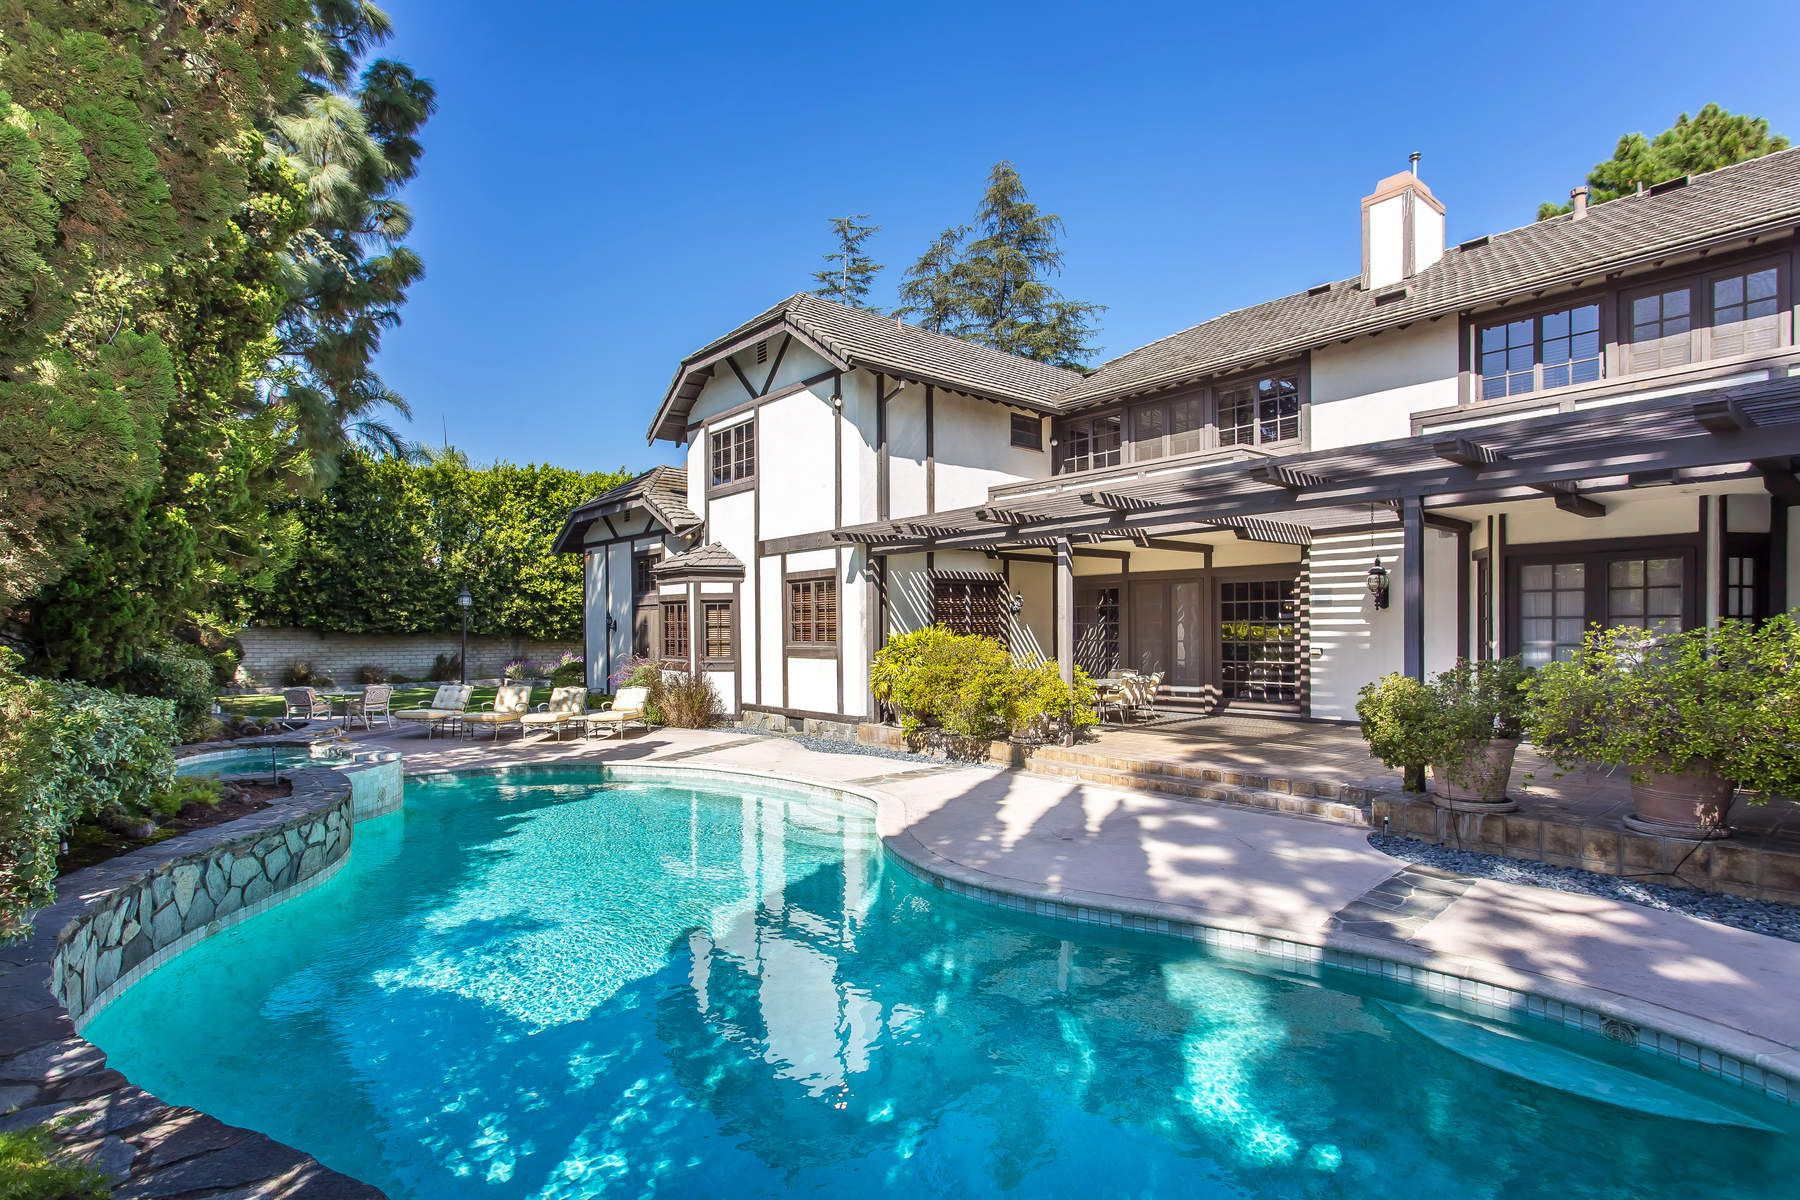 Single Family Home for Sale at Traditional Large Home in Mount Olympus Los Angeles, California 90046 United States